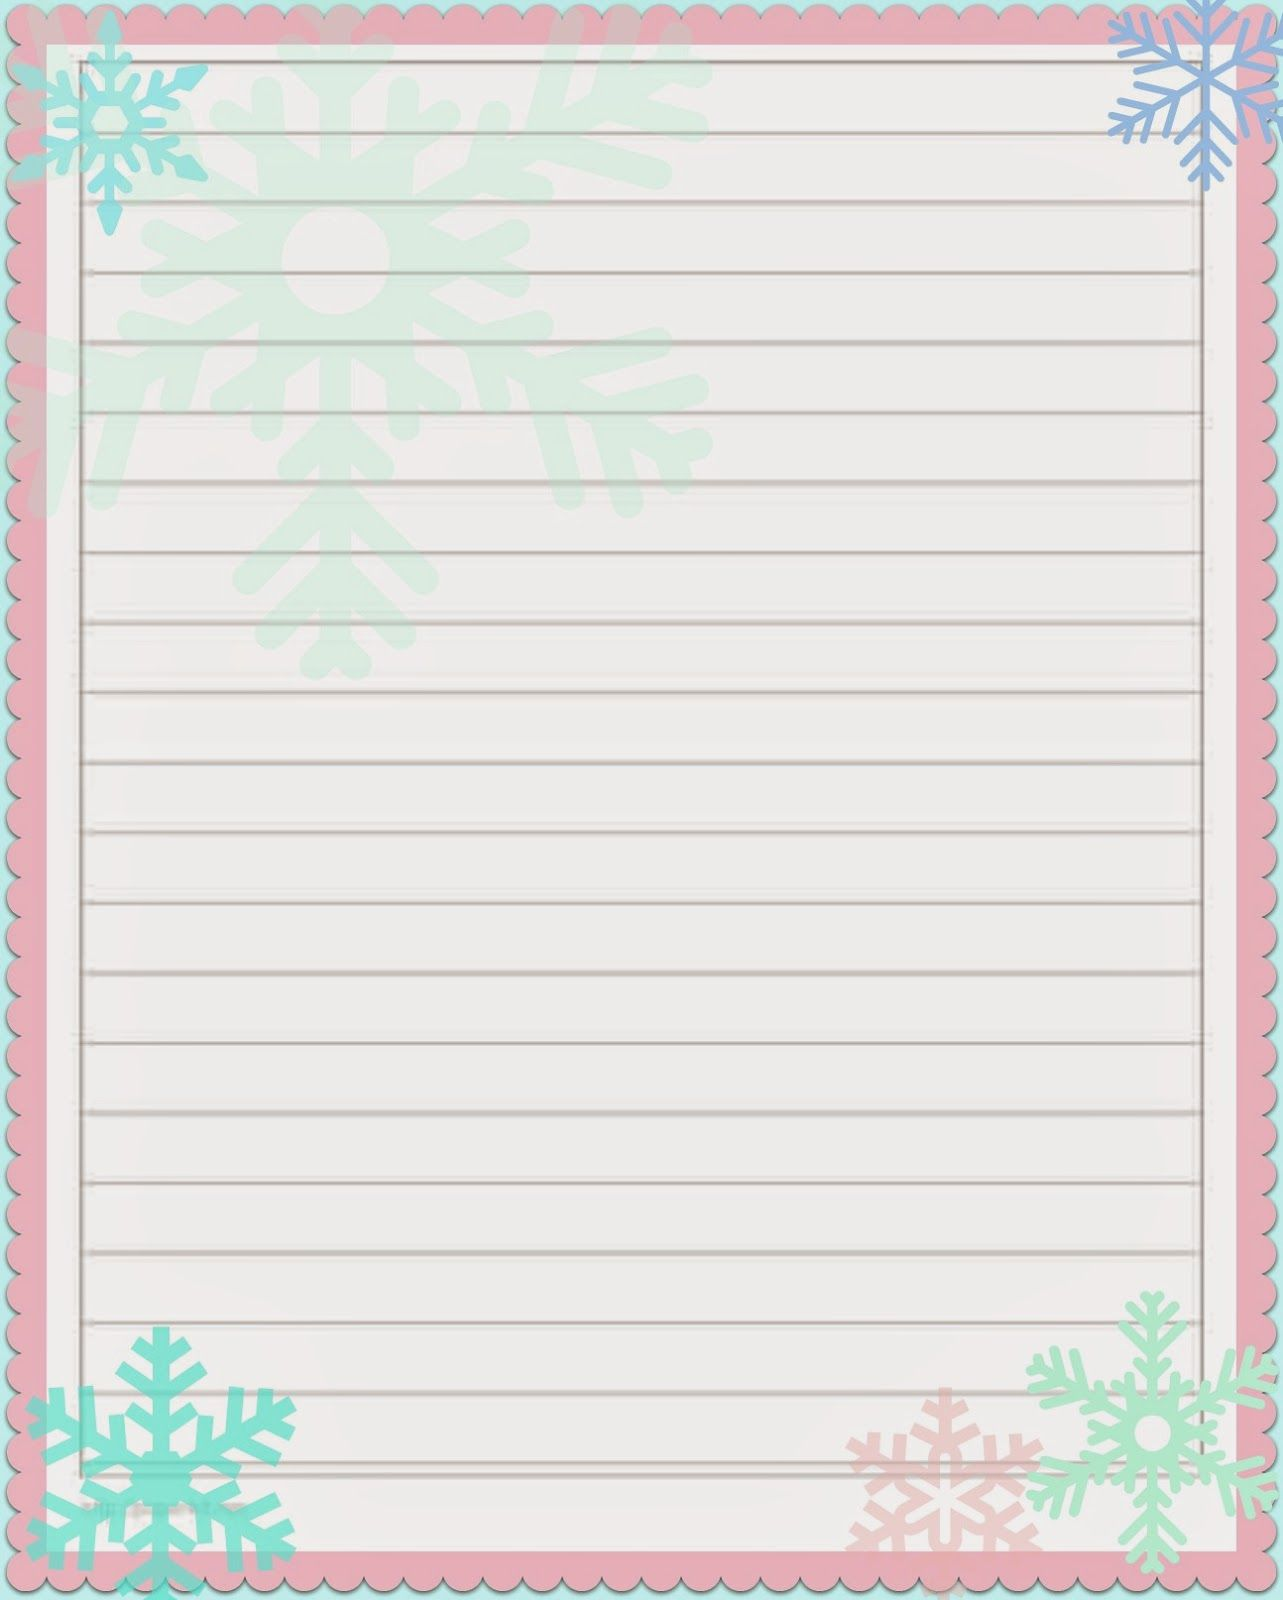 lined holiday printable paper 5x8 | best photos of cute printable